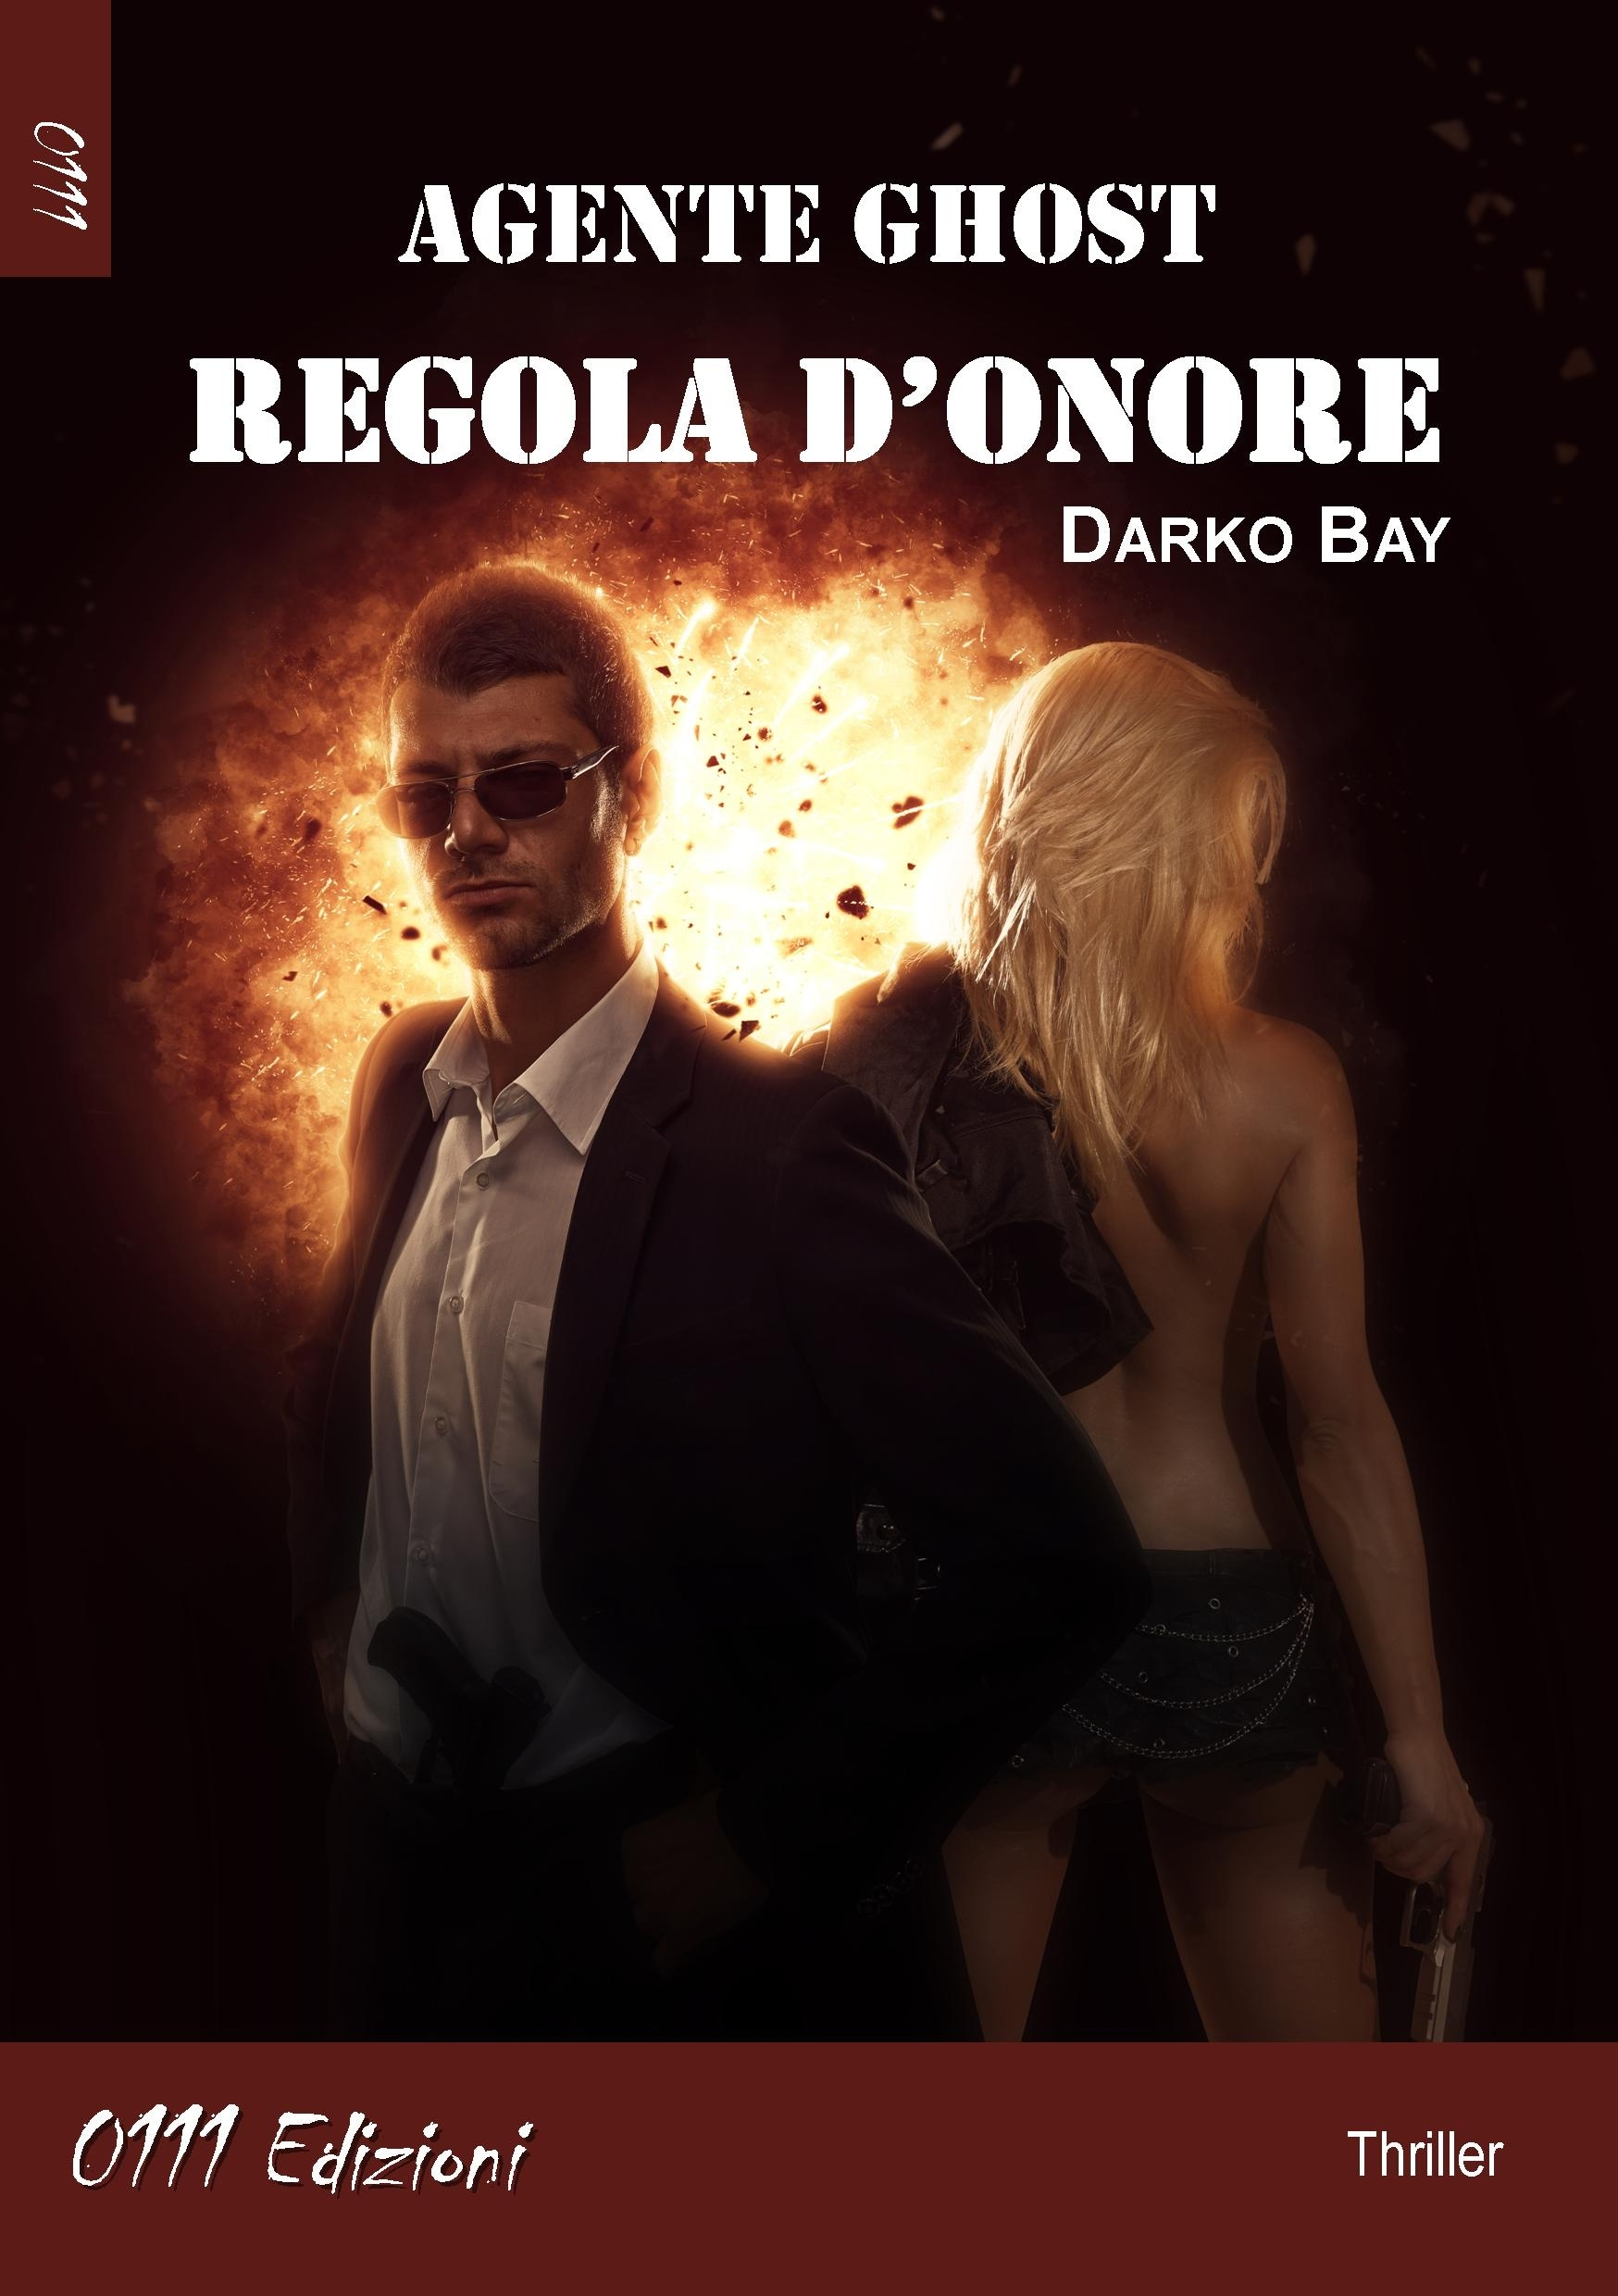 Agente Ghost: Regola d'onore